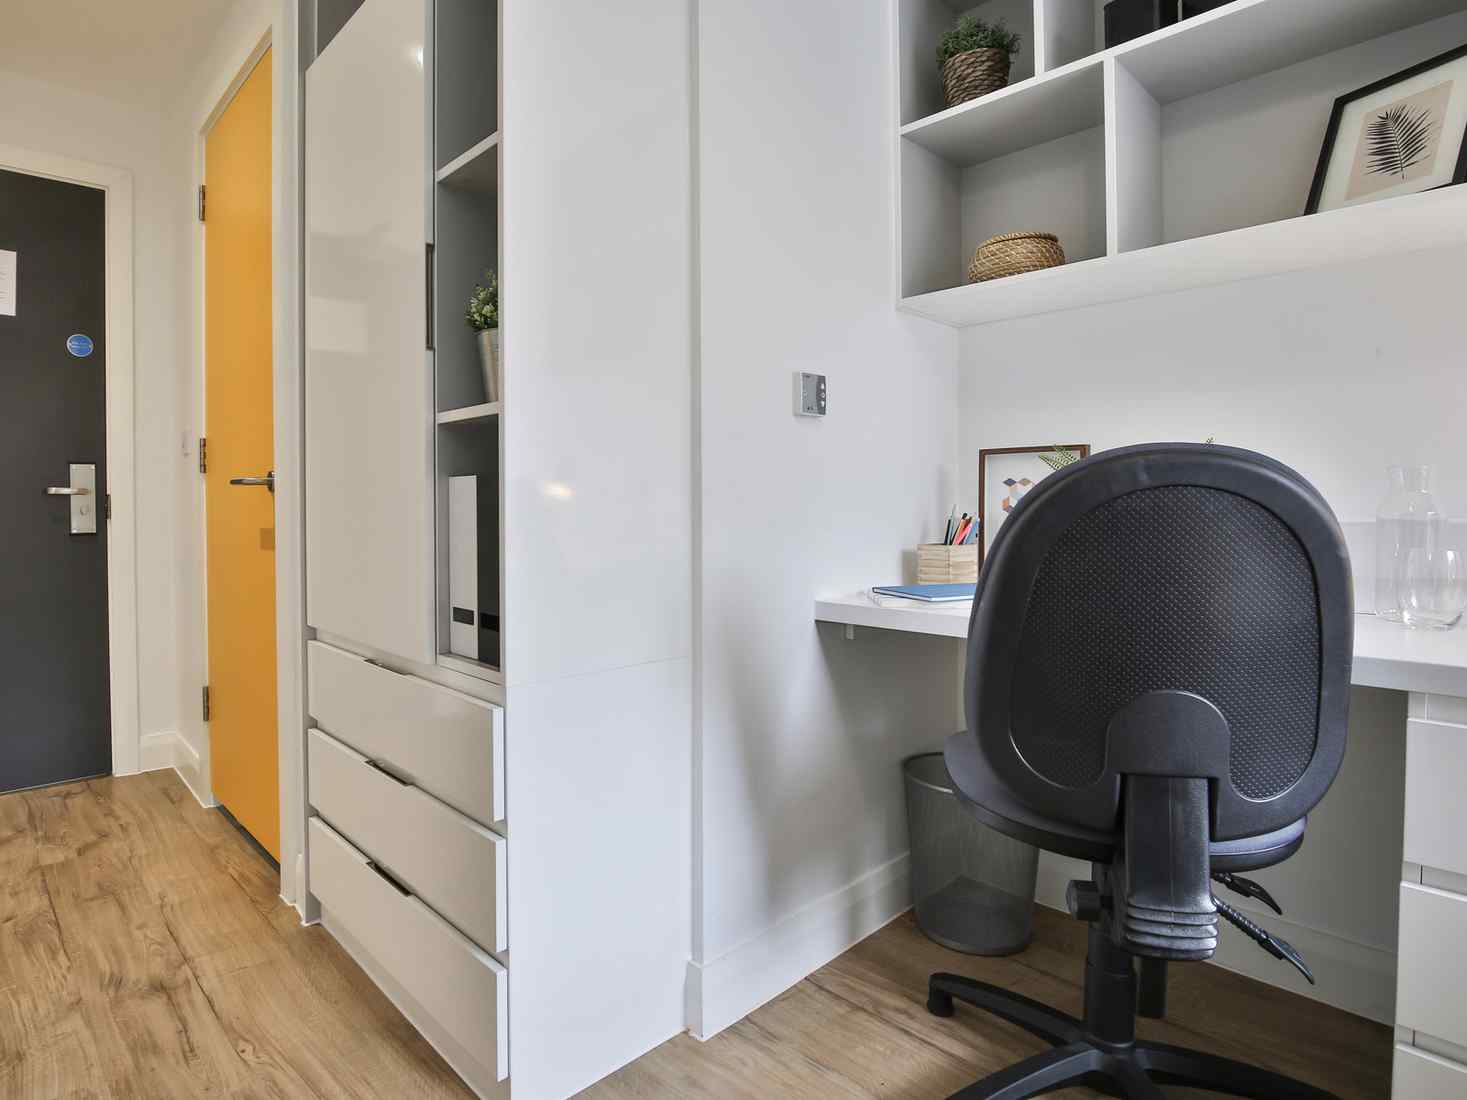 View of a Brickworks silver ensuite room, with desk, wardrobe and ensuite bathroom.